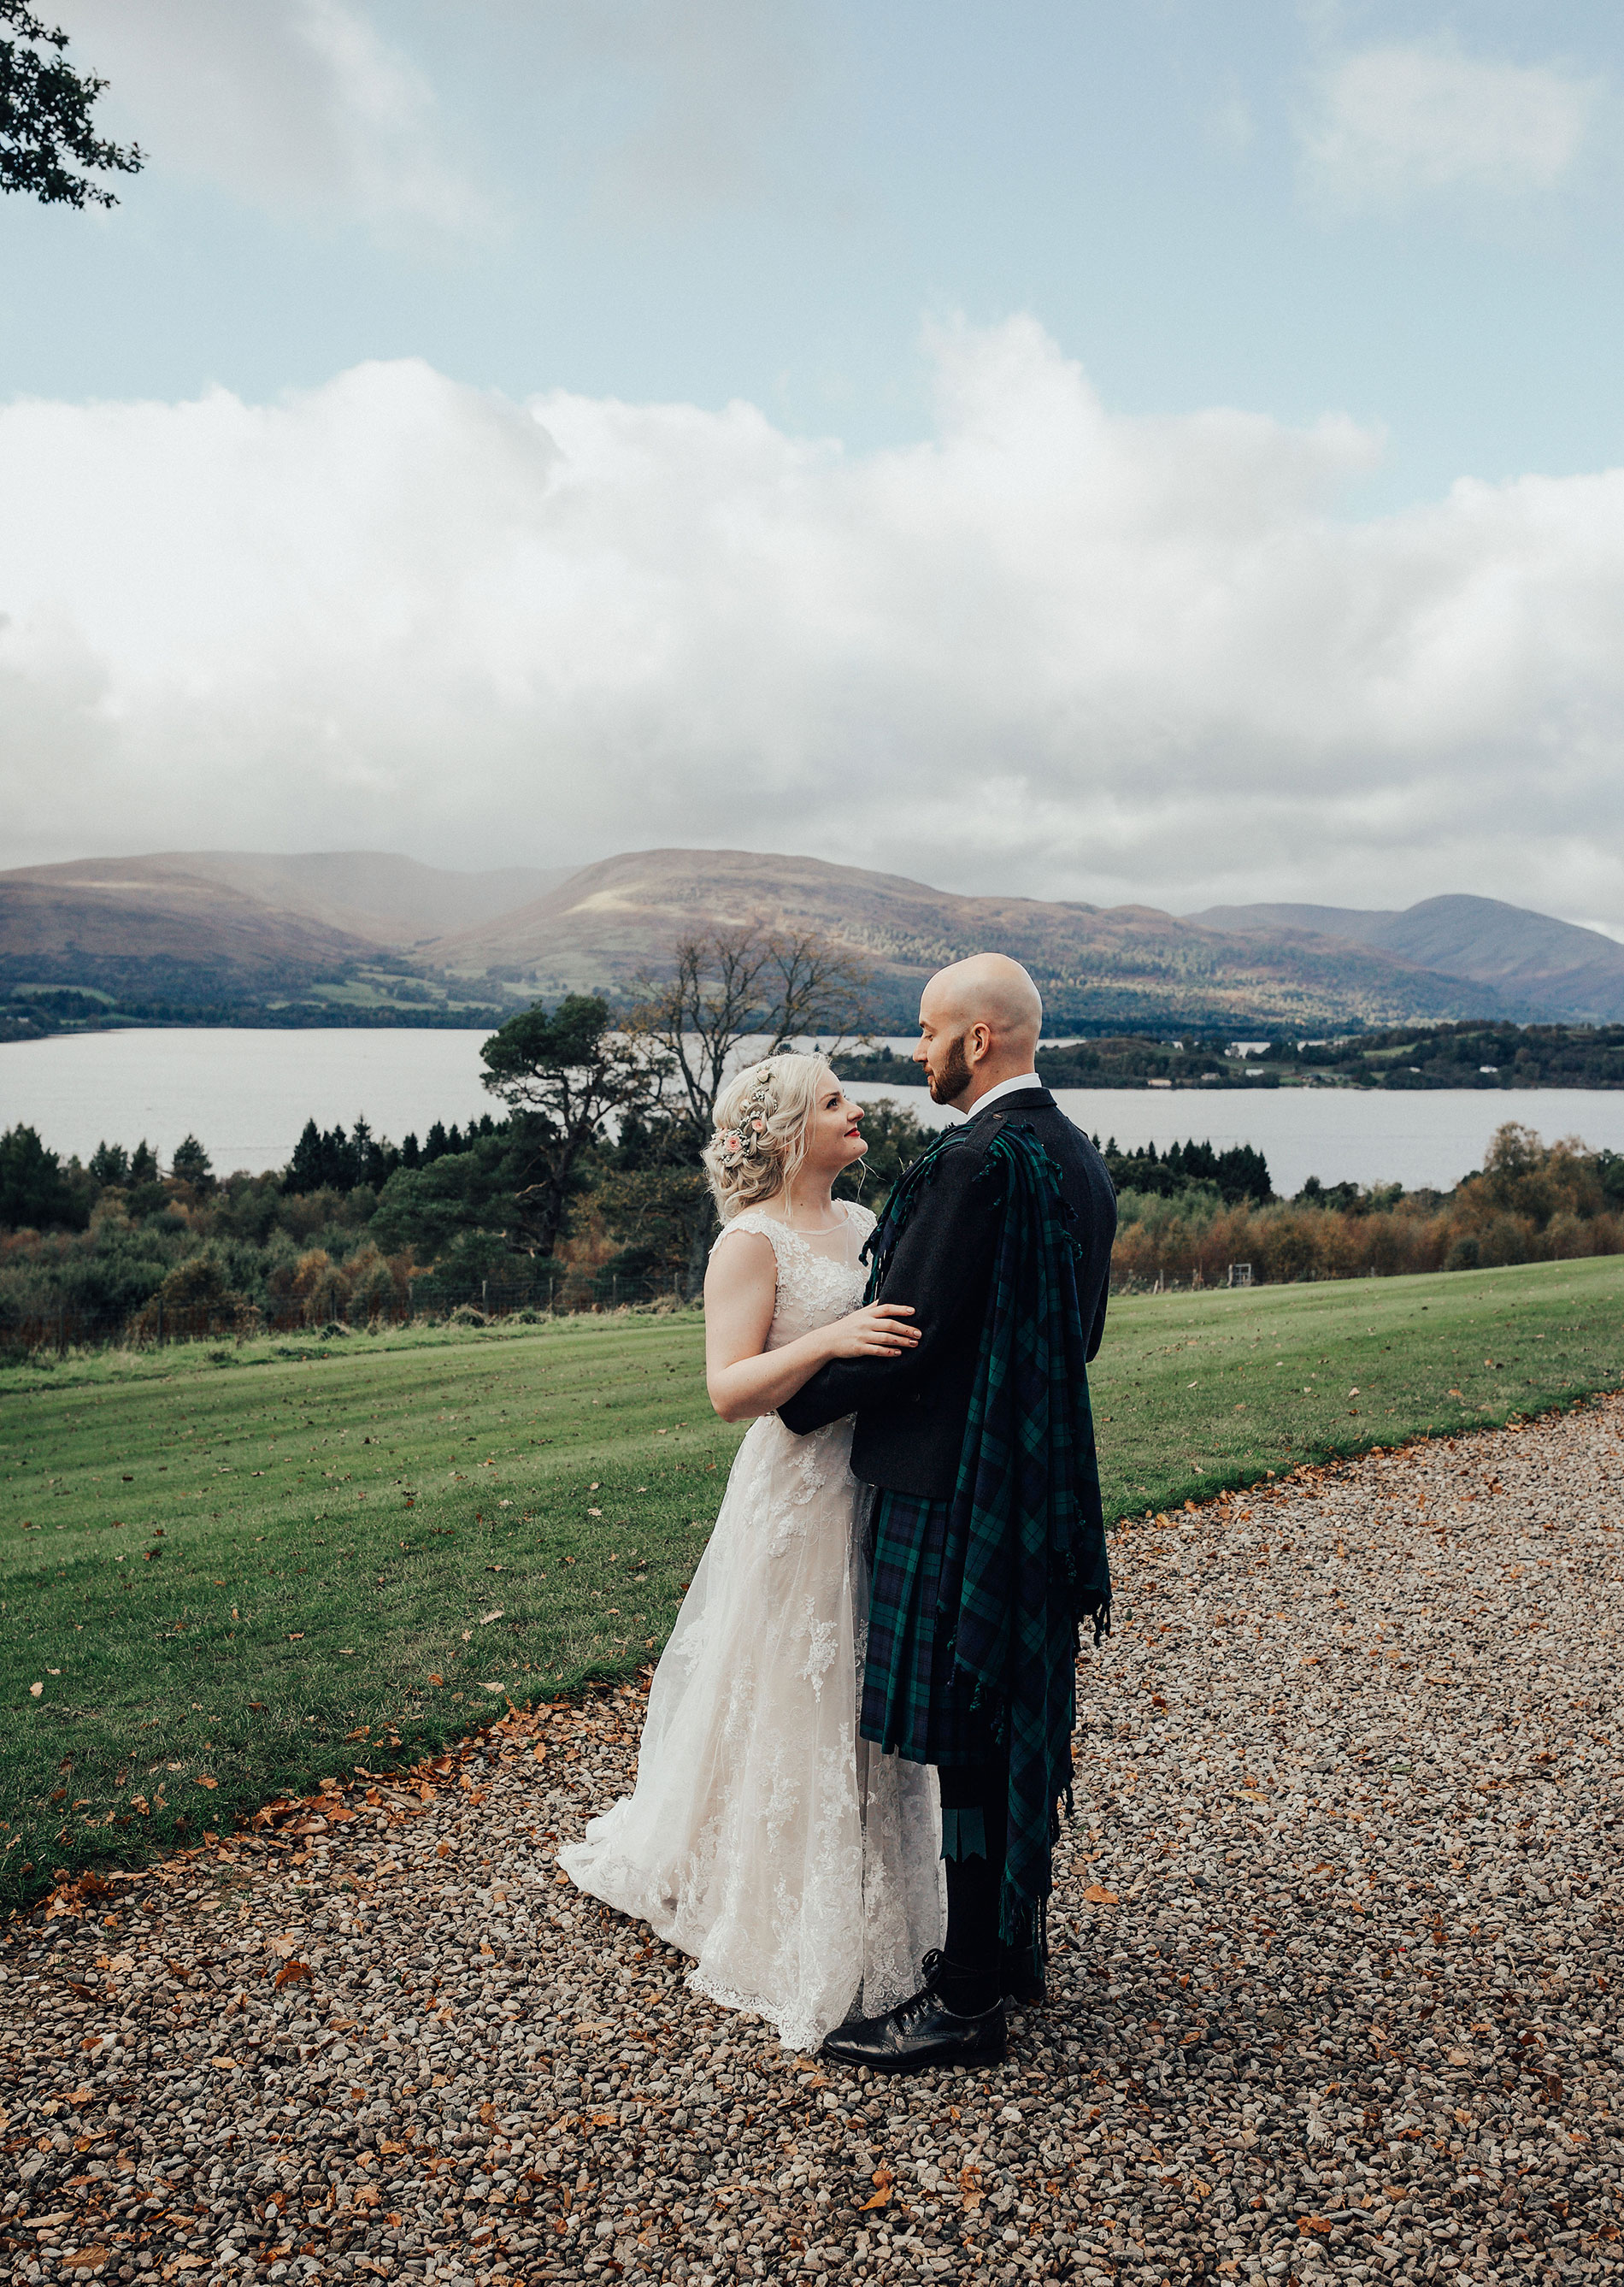 BOTURICH_CASTLE_WEDDING_PHOTOGRAPHER_PJ_PHILLIPS_PHOTOGRAPHY_111.jpg